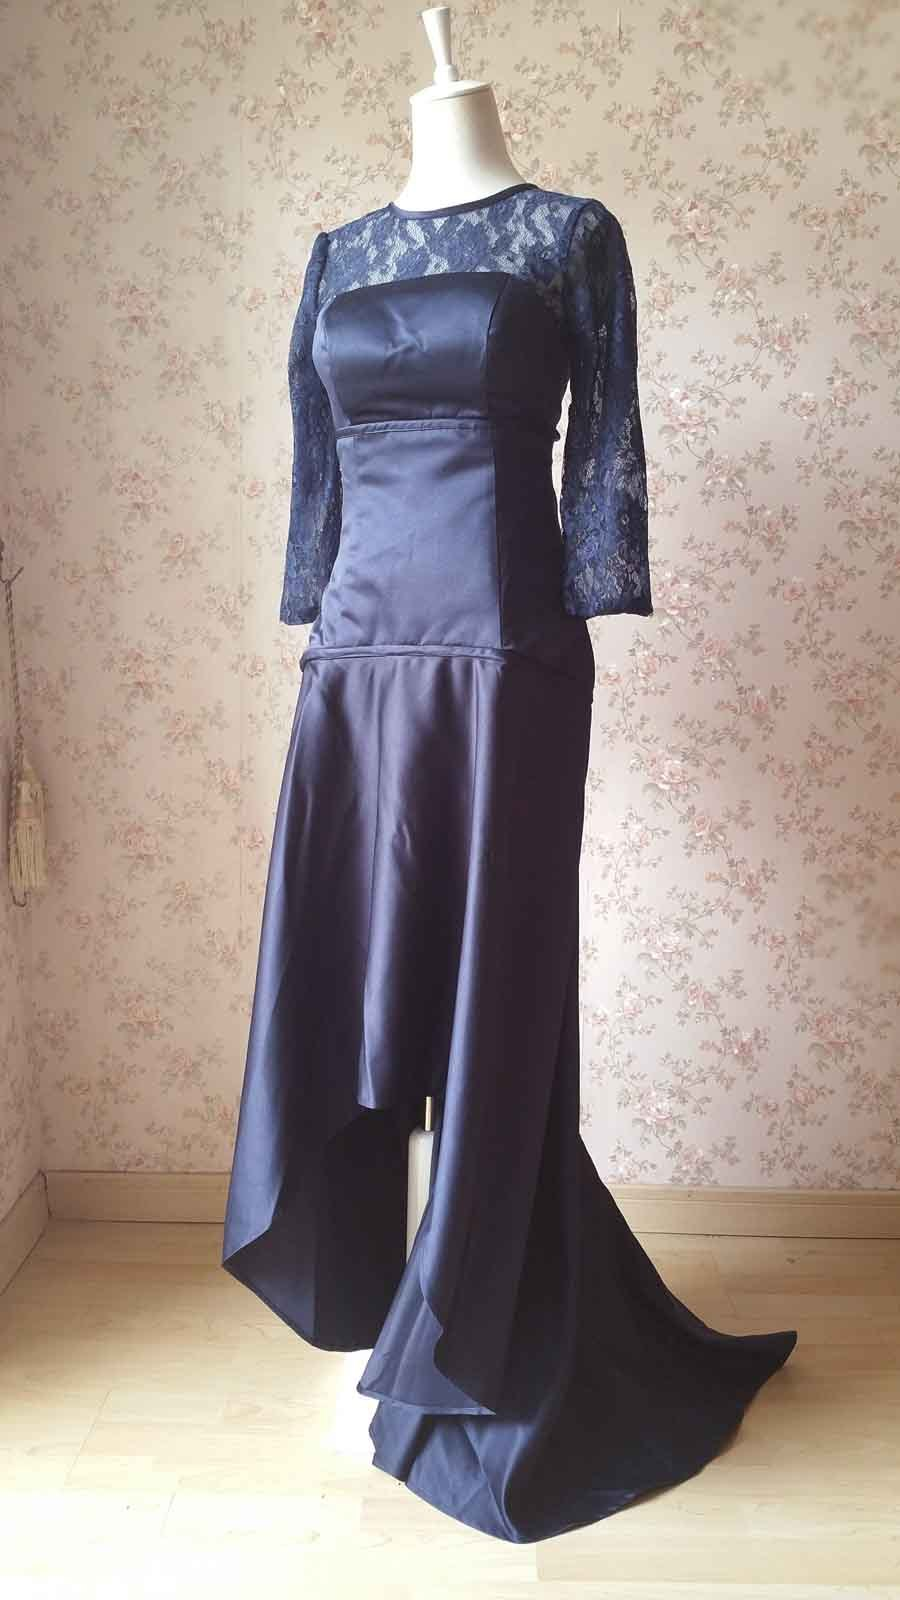 Navy Lace Long Sleeve Mermaid Dress Navy Mother of the bride Dress Wedding Dress